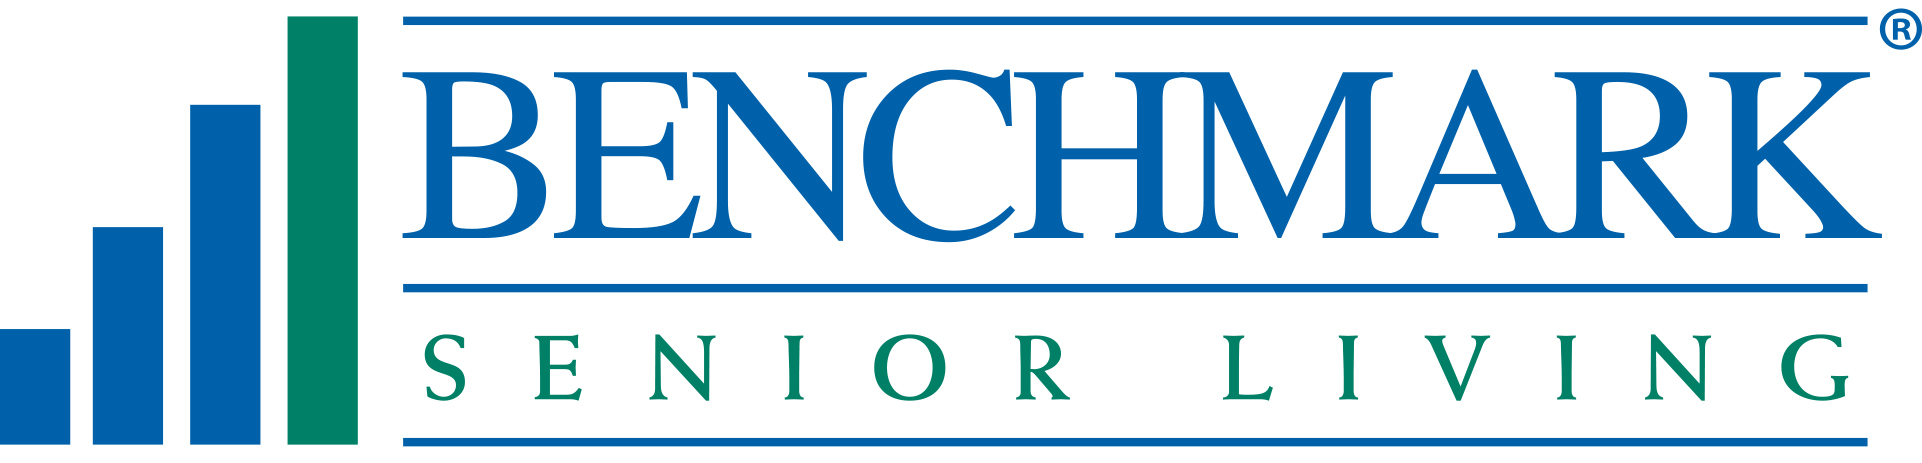 8. Benchmark Senior Living (Statewide Patron)